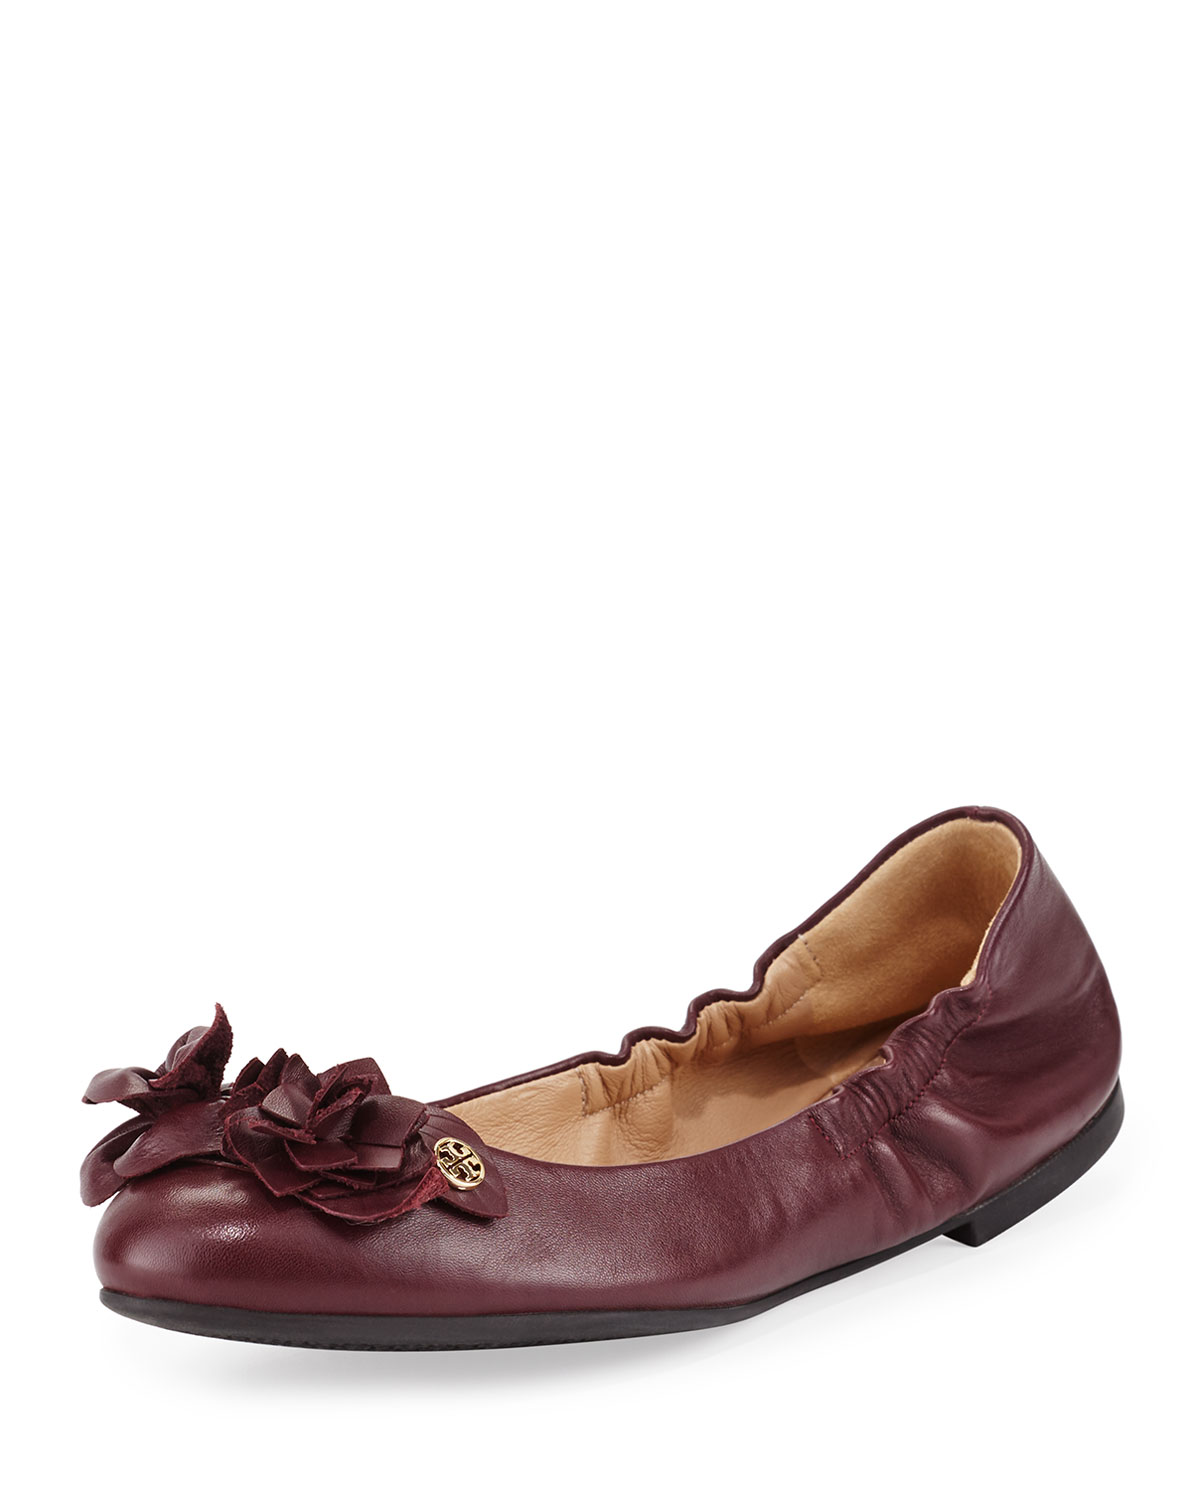 89736f0caa9 Tory Burch Blossom Leather Ballet Flat